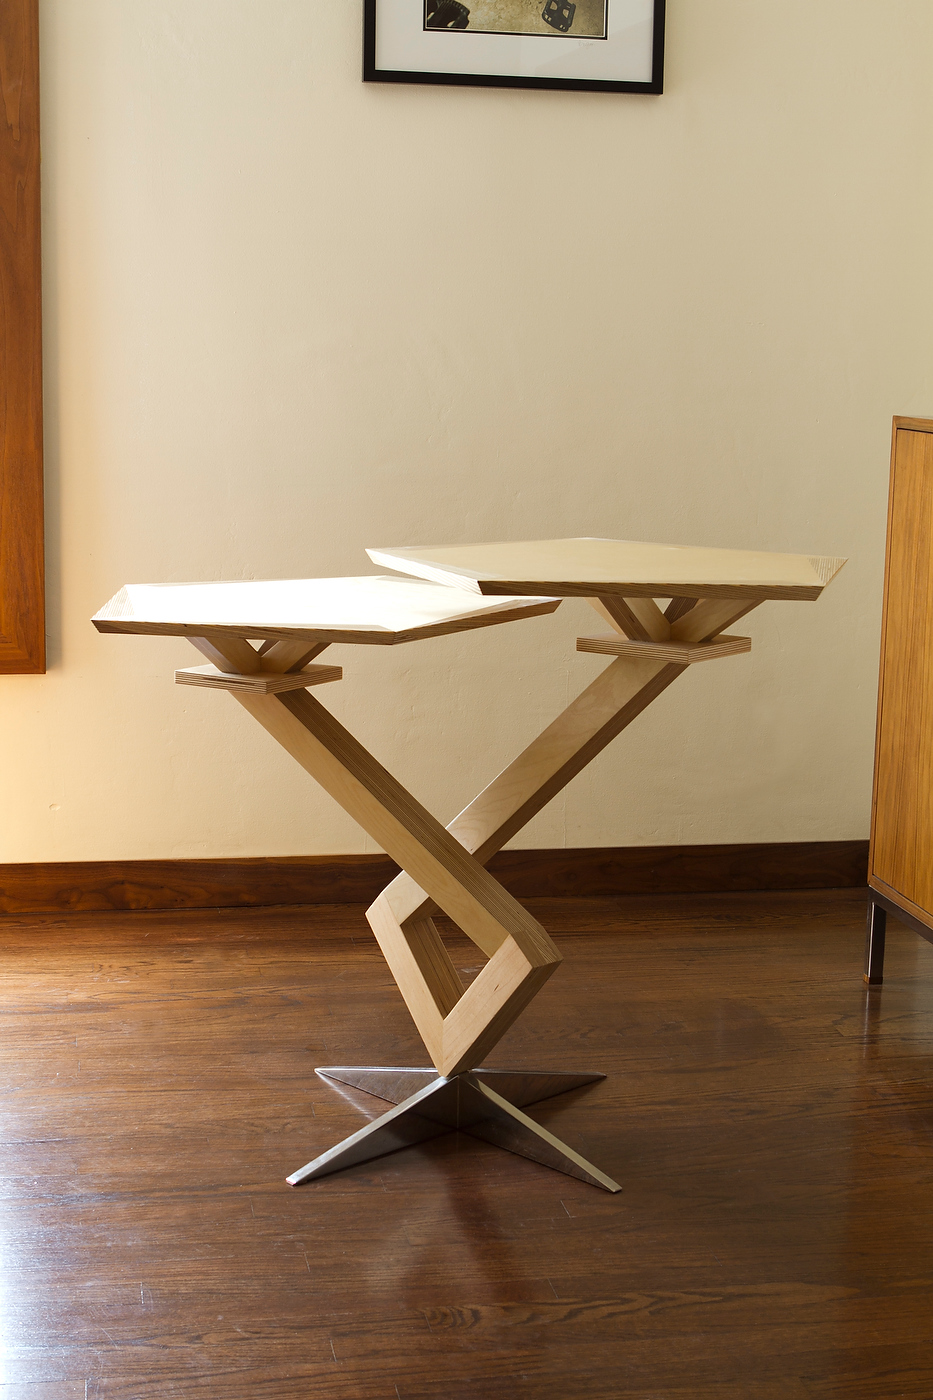 furniture-chair-table-02.jpg